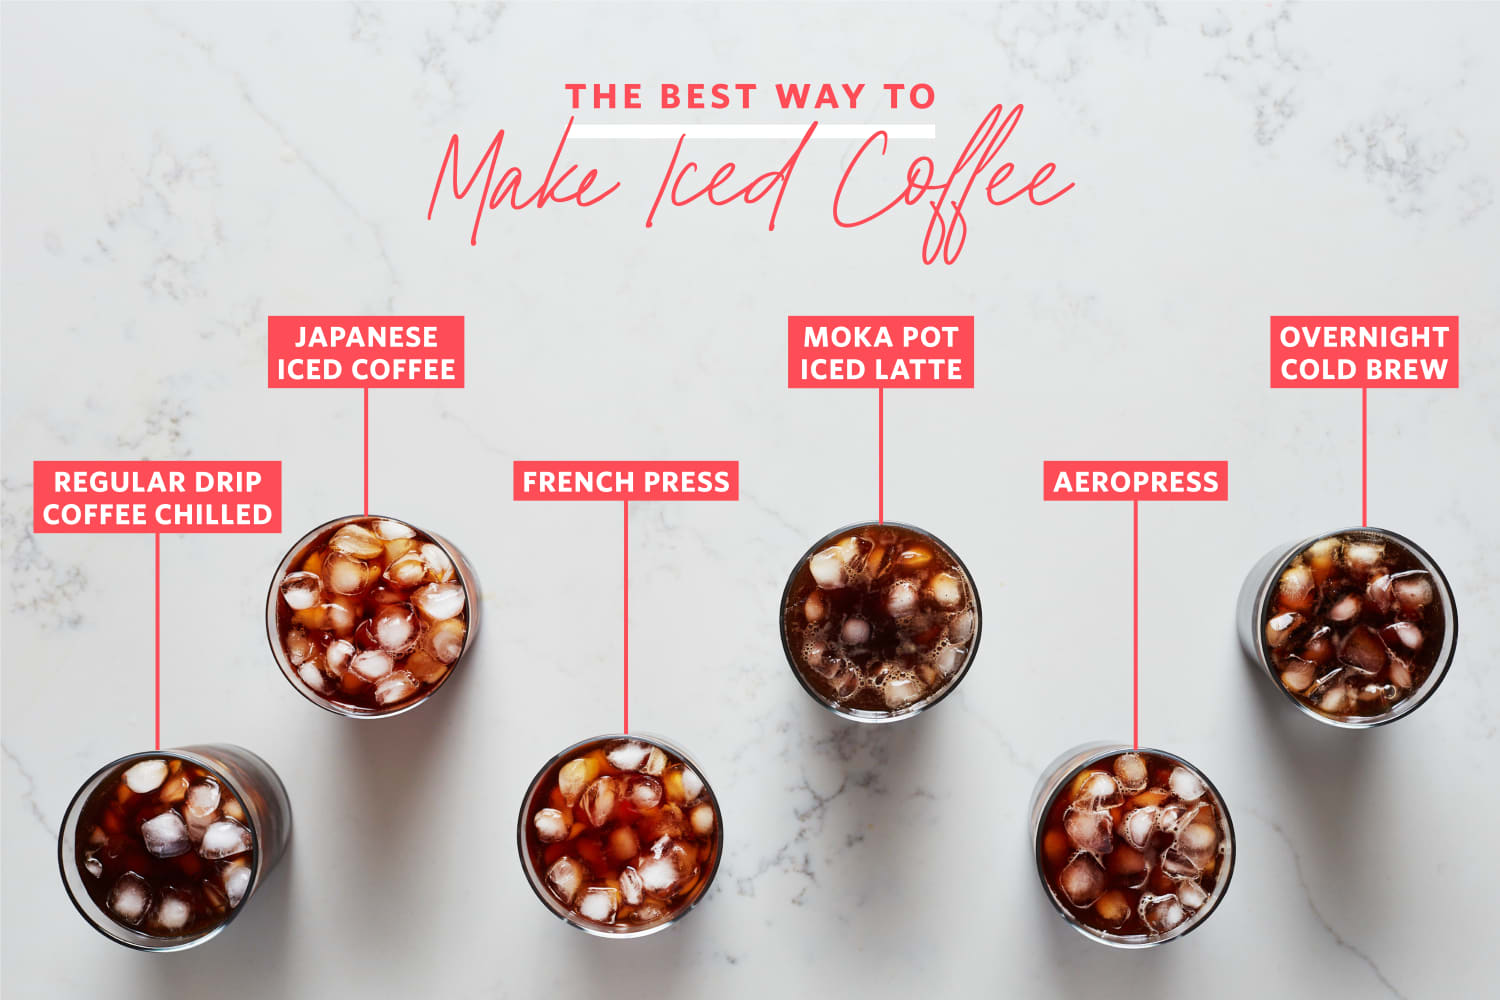 We Tested 6 Methods for Making Iced Coffee at Home and Found the Very Best One